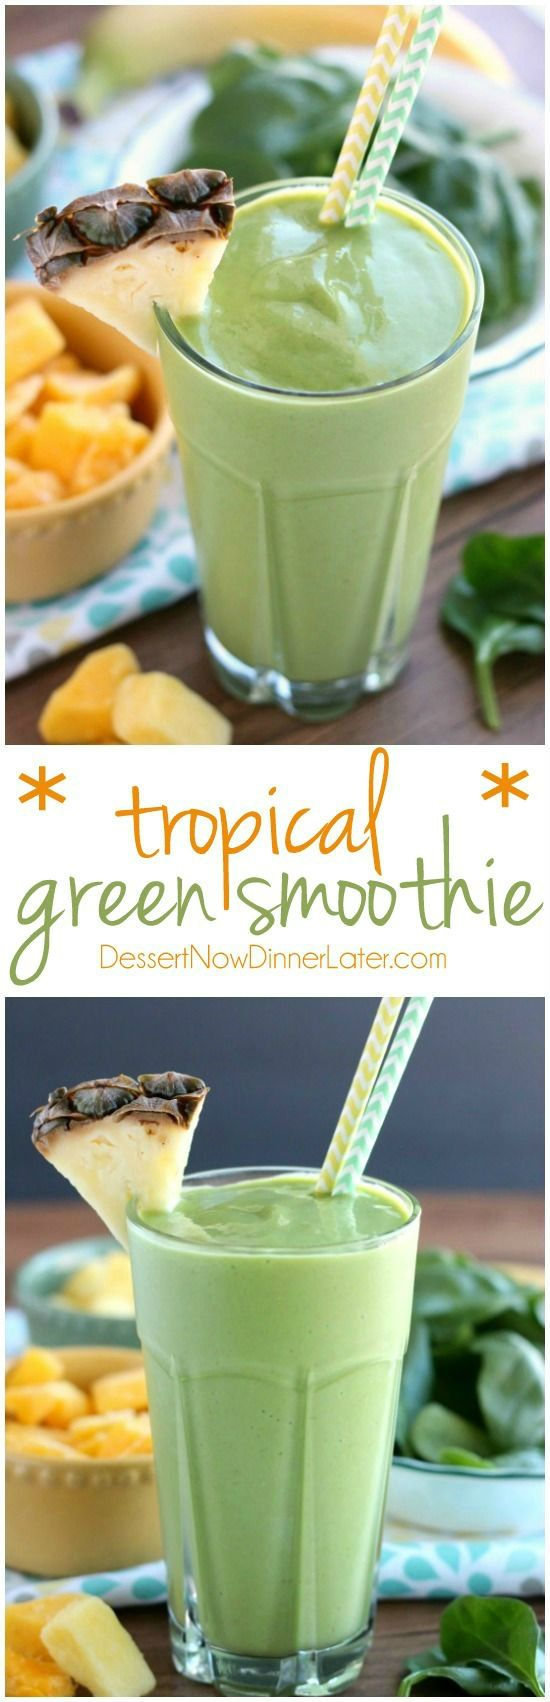 This Tropical Green Smoothie uses tender spinach leaves, plain non-fat greek yogurt, and frozen fruit for a naturally sweet smoothie that's great for breakfast or a snack! on MyRecipeMagic.com